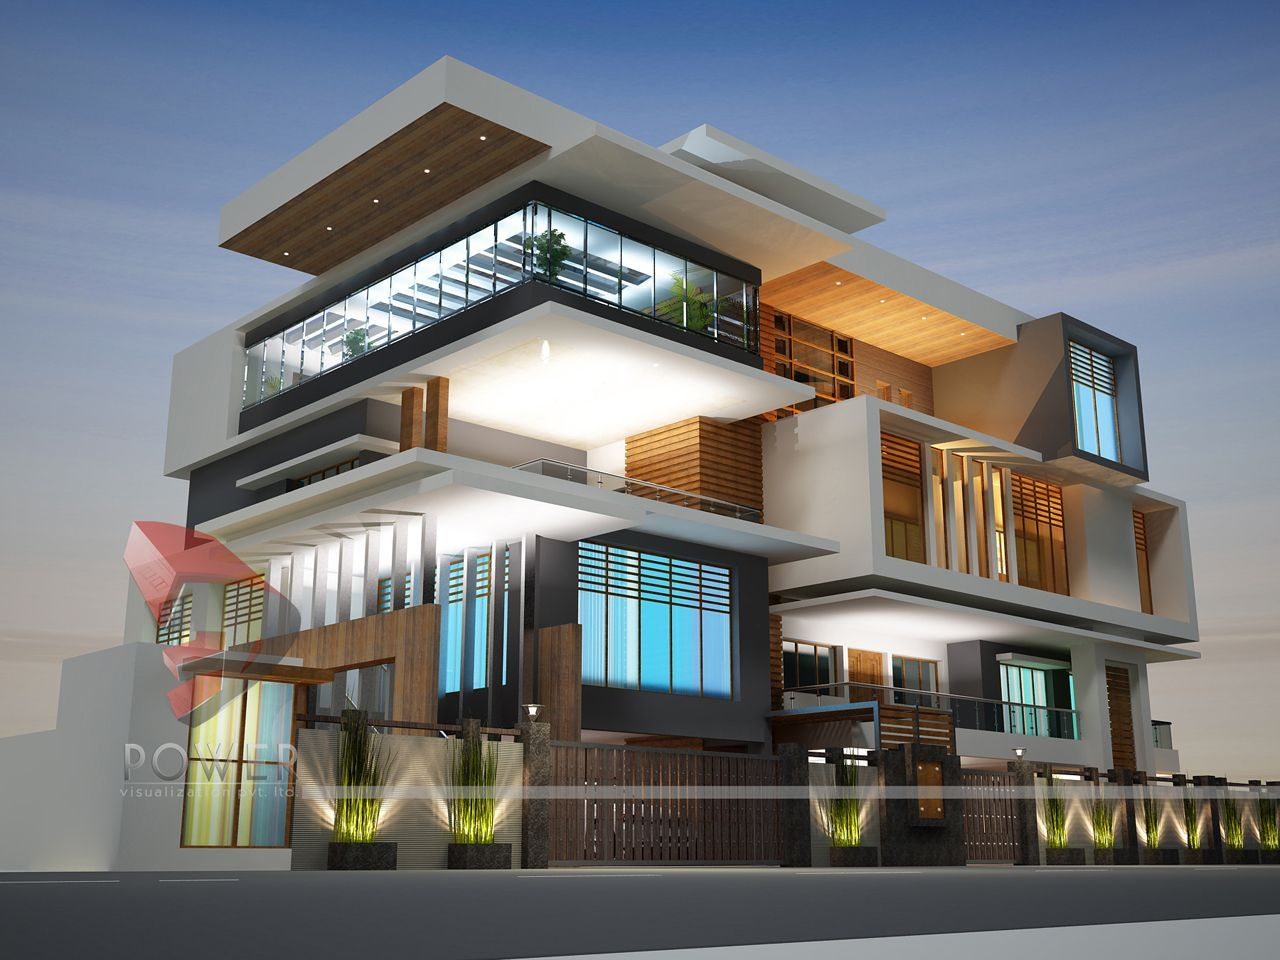 Modern house design in india architecture india modern for Home building architects